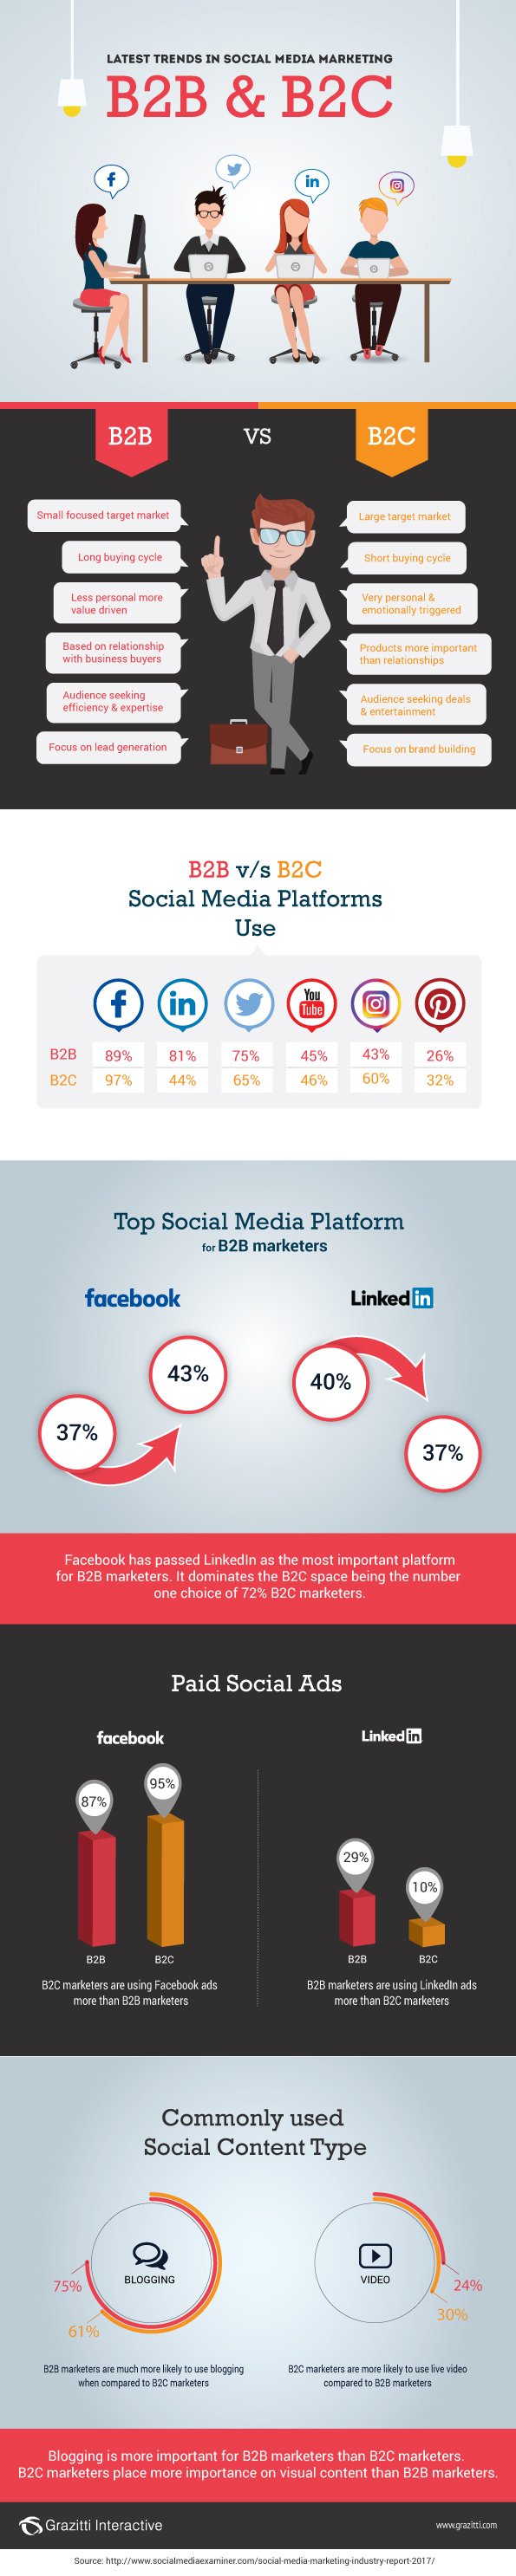 Latest Trends In Social Media Marketing B2B And B2C - #Infographic